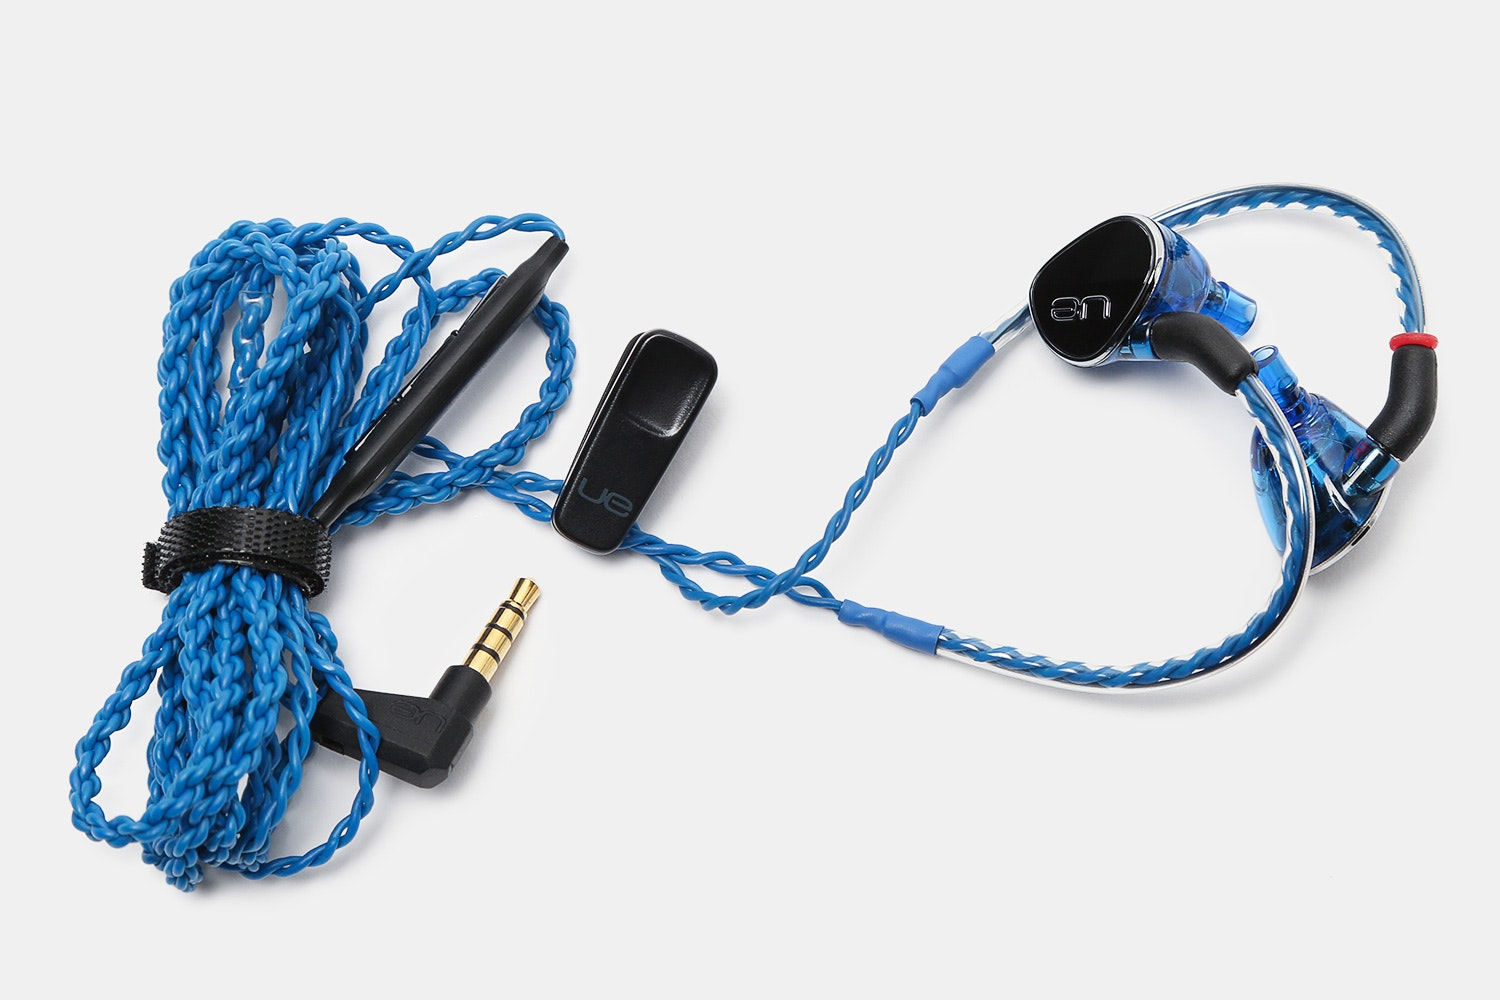 Ultimate Ears UE900s IEM